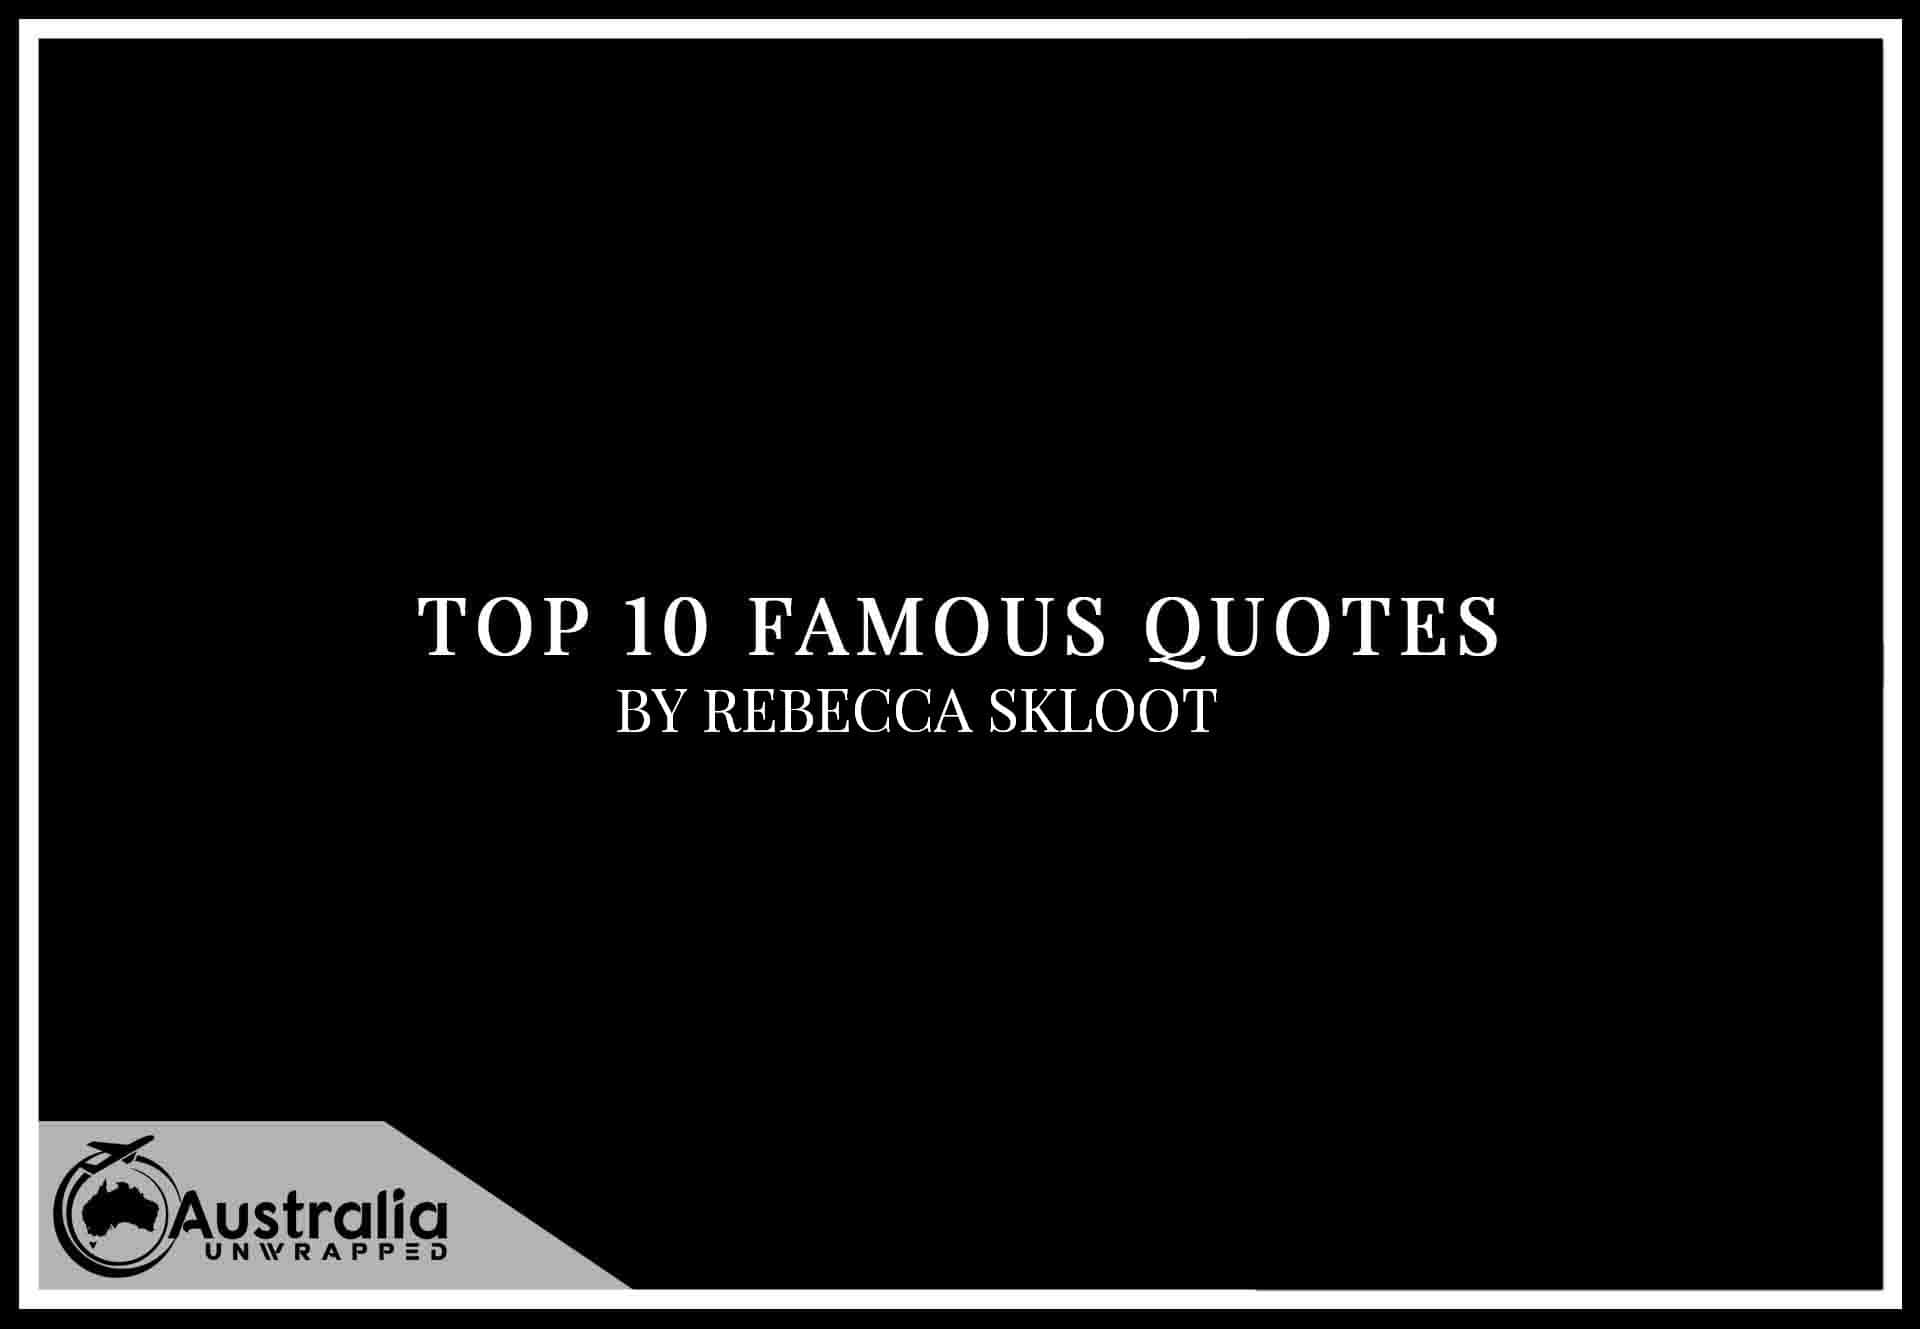 Top 10 Famous Quotes by Author Rebecca Skloot